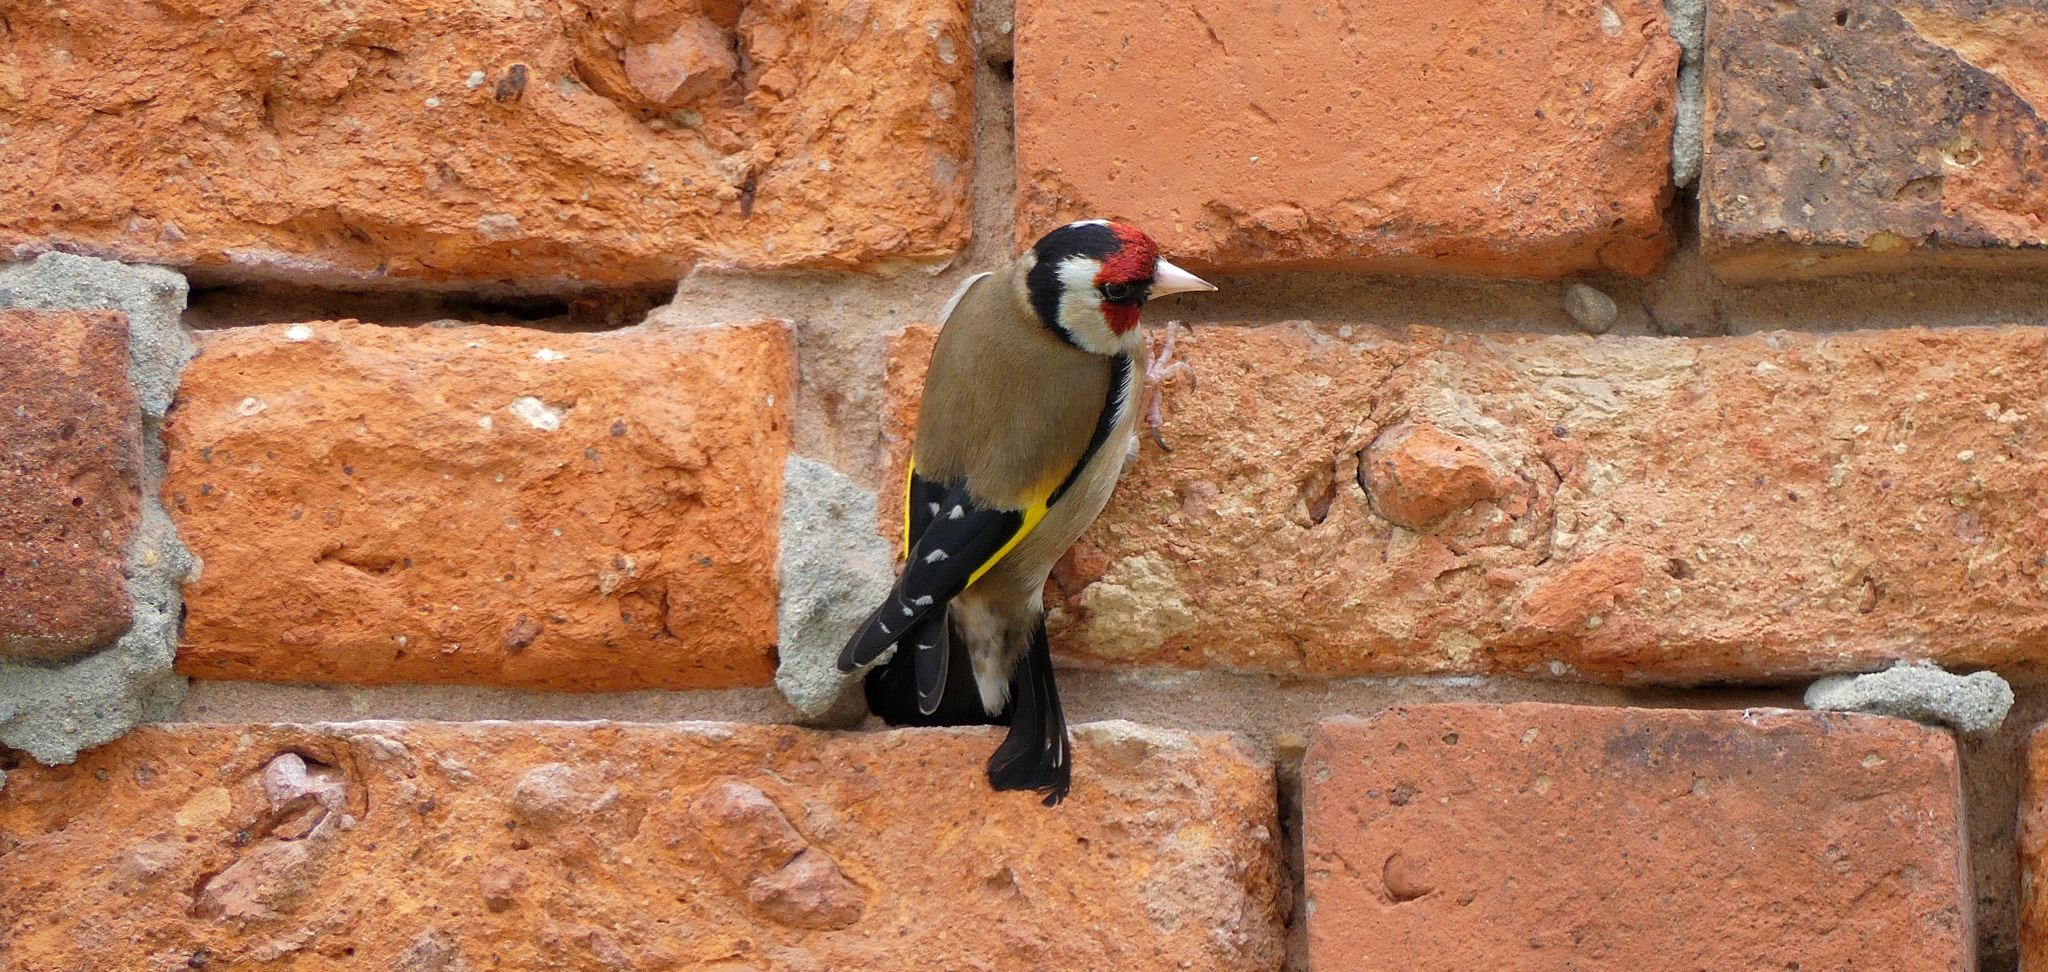 Trying to take a picture of a wall. Dickybird ruins it, because that's what dicky birds do. by Lars Verhoeff